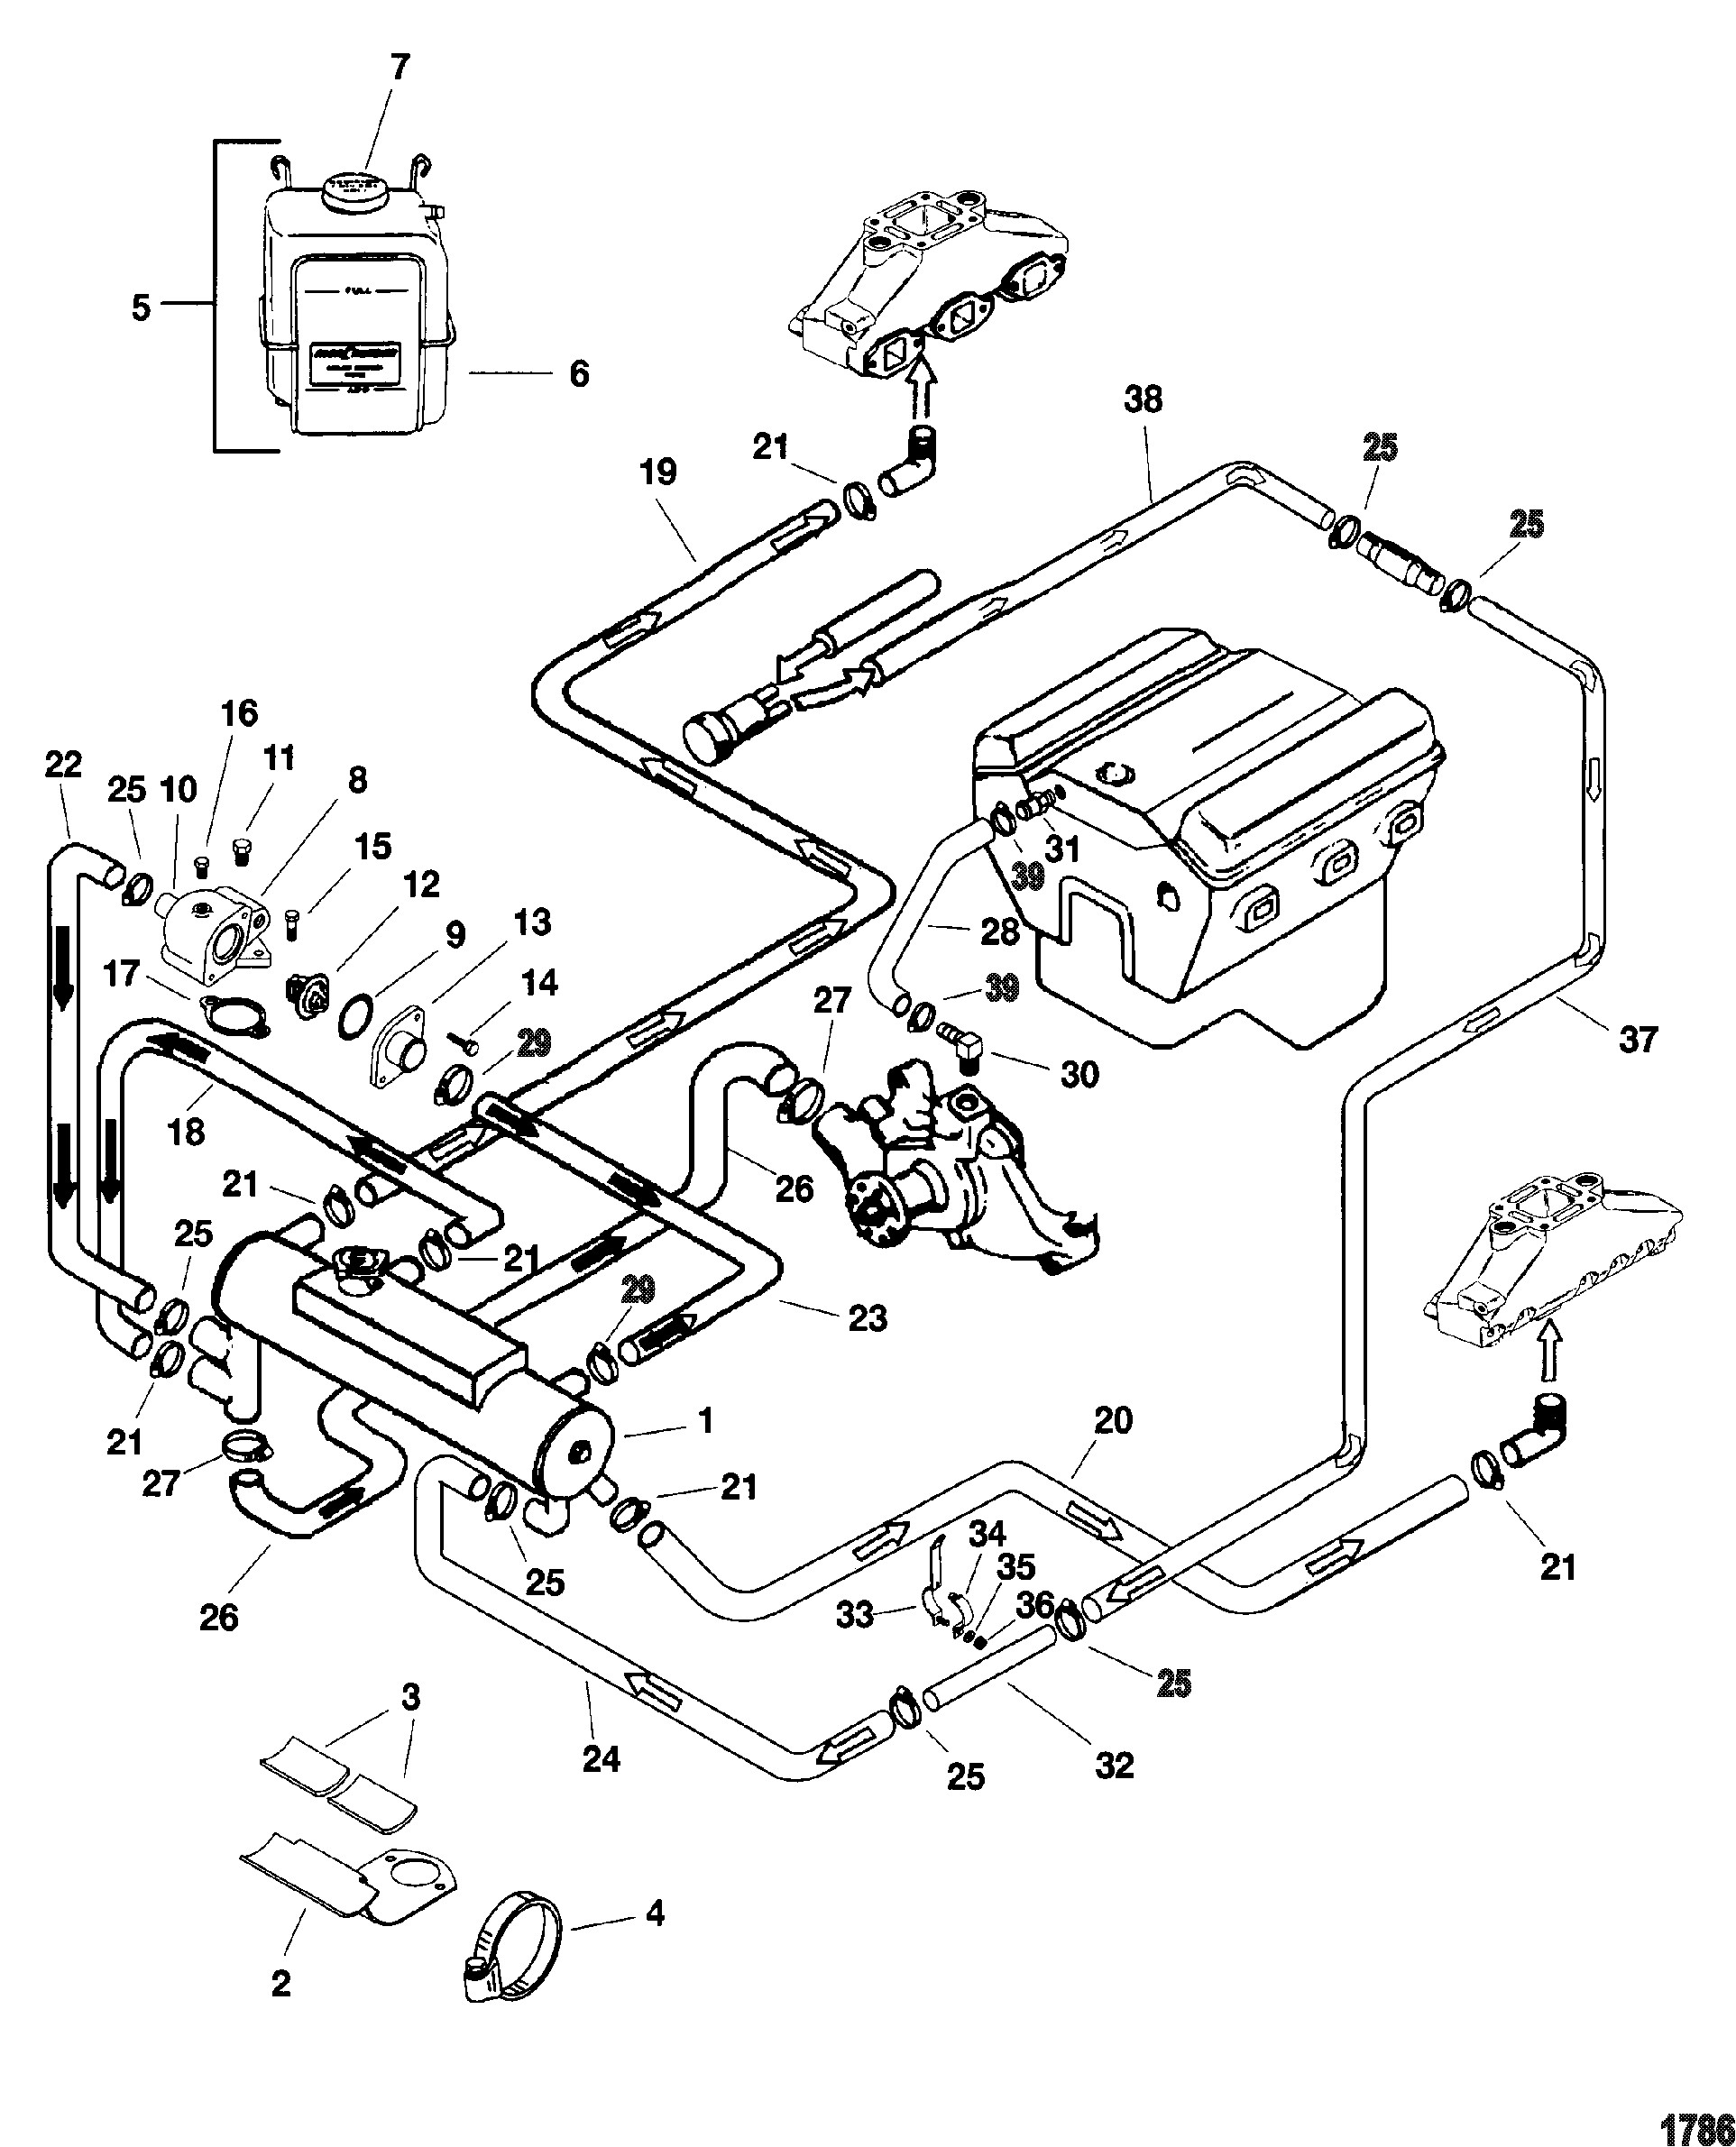 hight resolution of dodge 3 0 engine diagram wiring diagram third level rh 4 14 20 jacobwinterstein com chrysler 3 5 engine diagram chrysler concorde 3 2 engine diagram